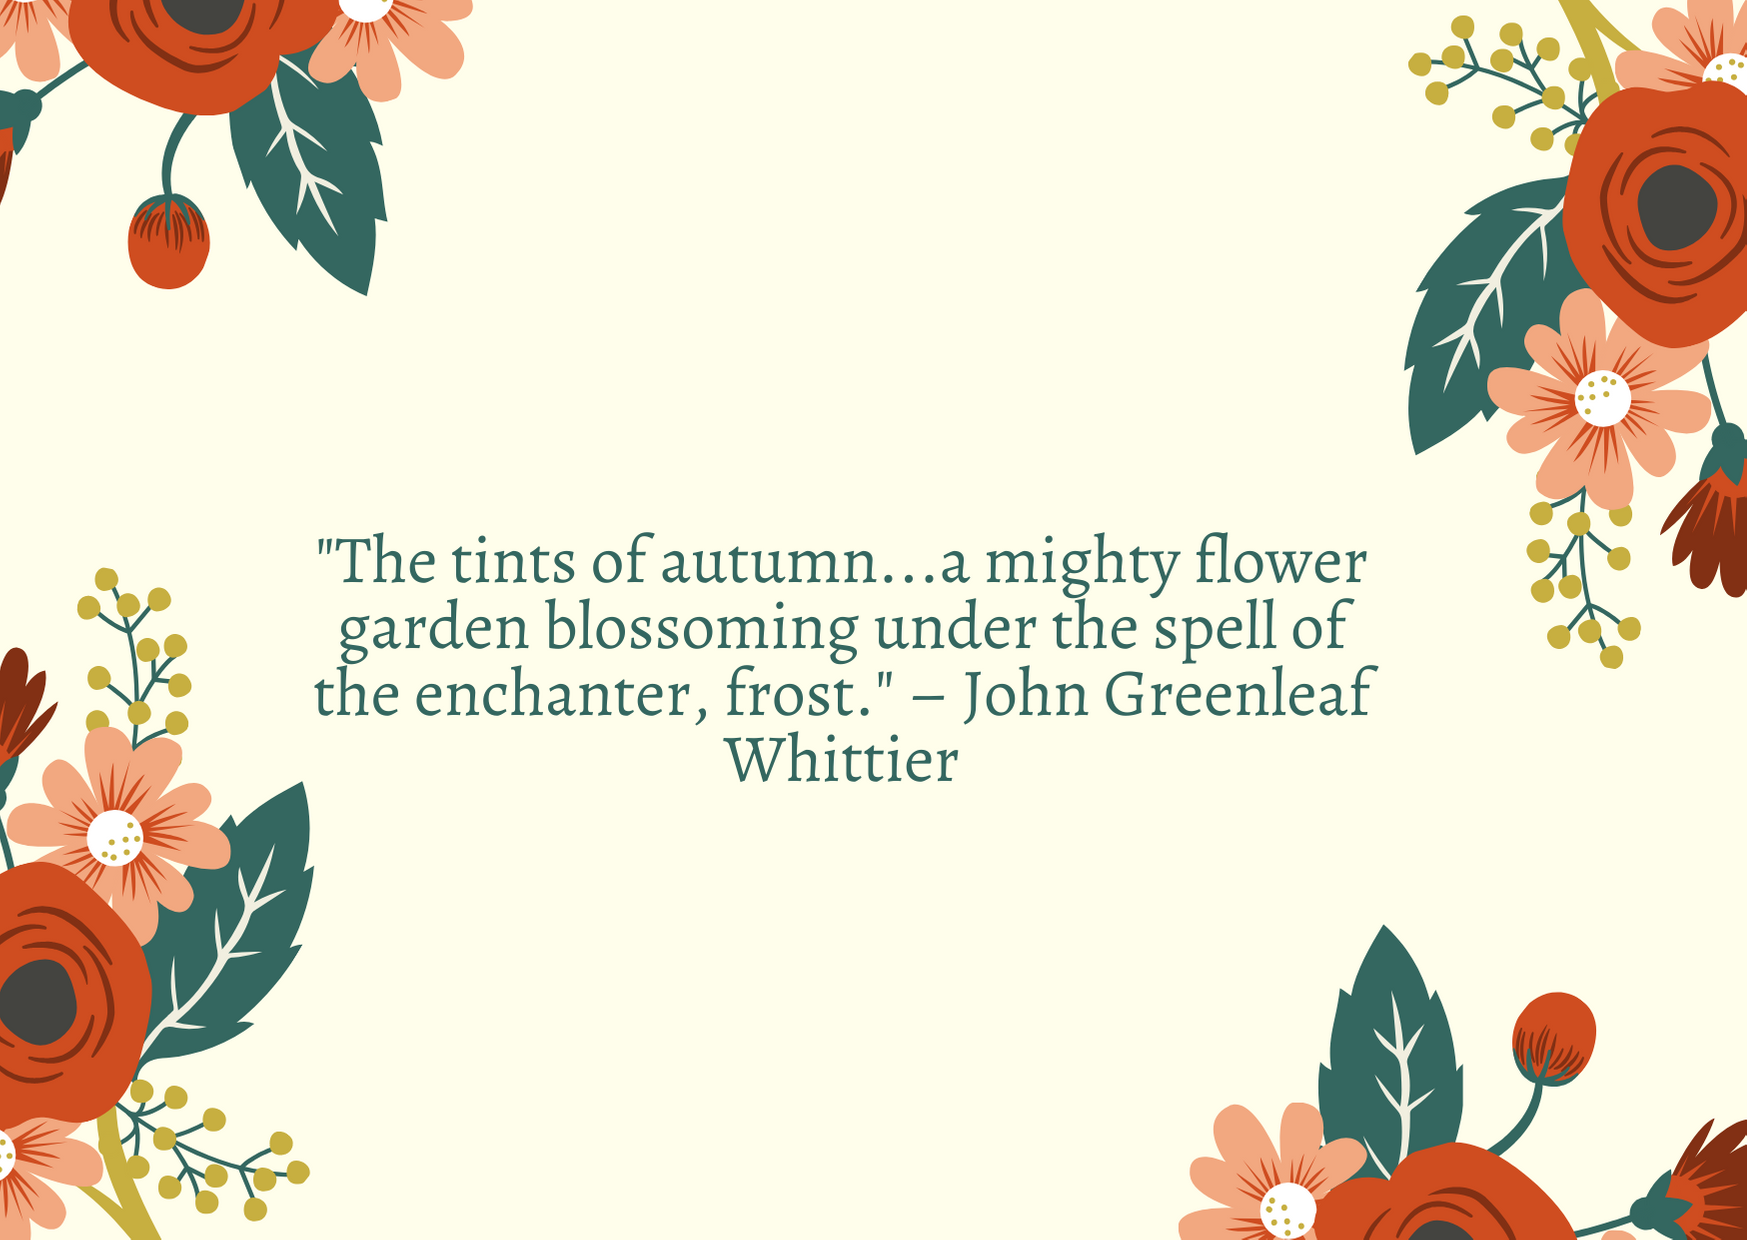 """The tints of autumn...a mighty flower garden blossoming under the spell of the enchanter, frost."" – John Greenleaf Whittier"